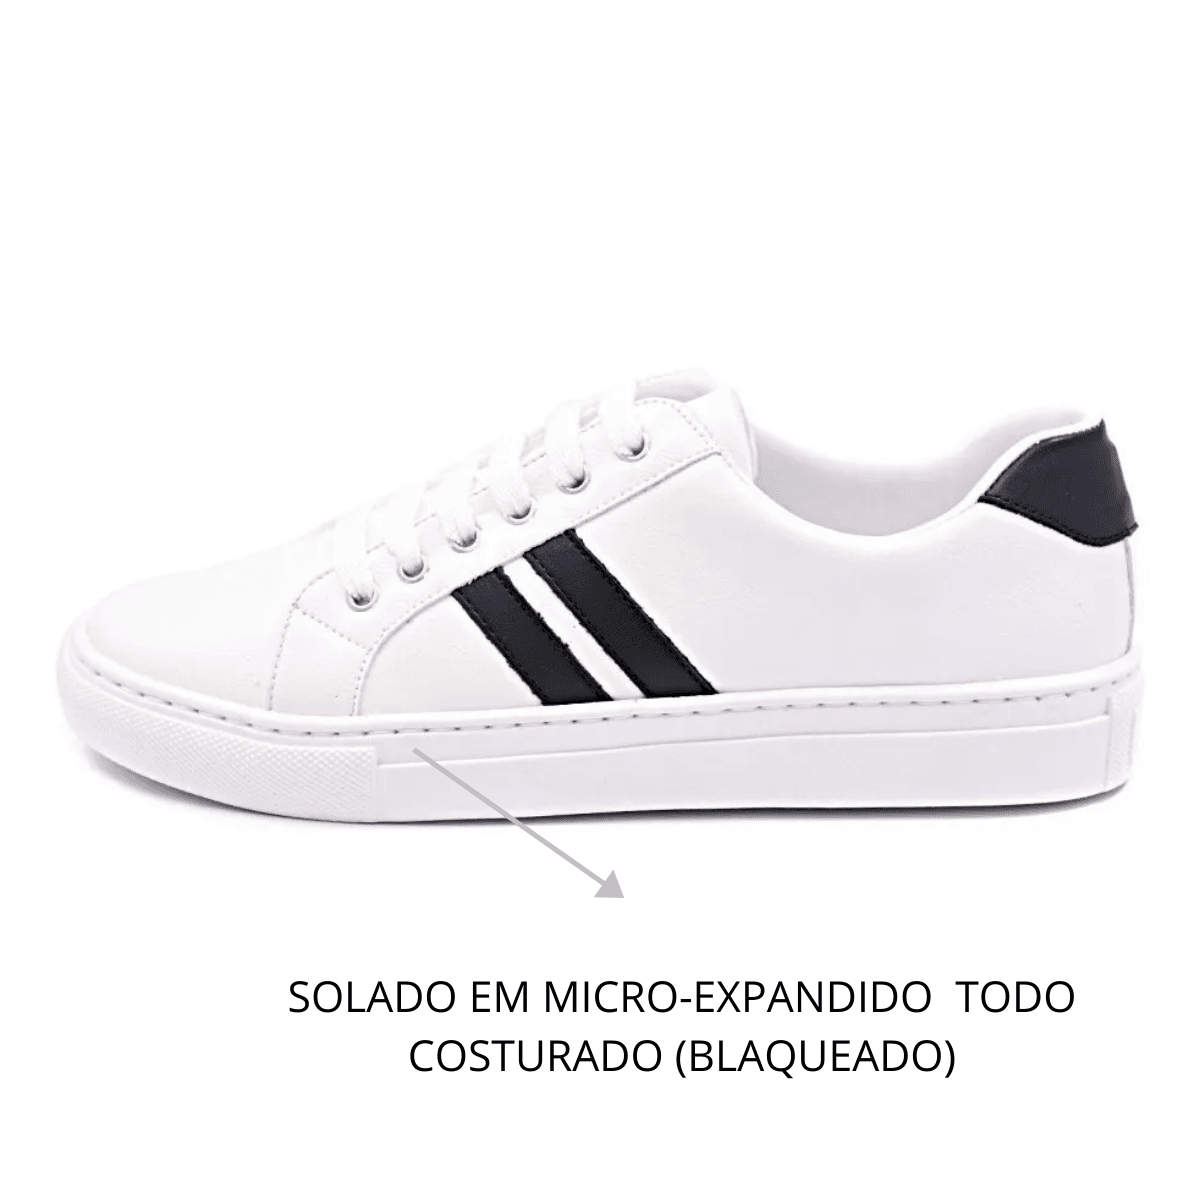 Tênis Casual Gommix Shoes 054 Listras Preto